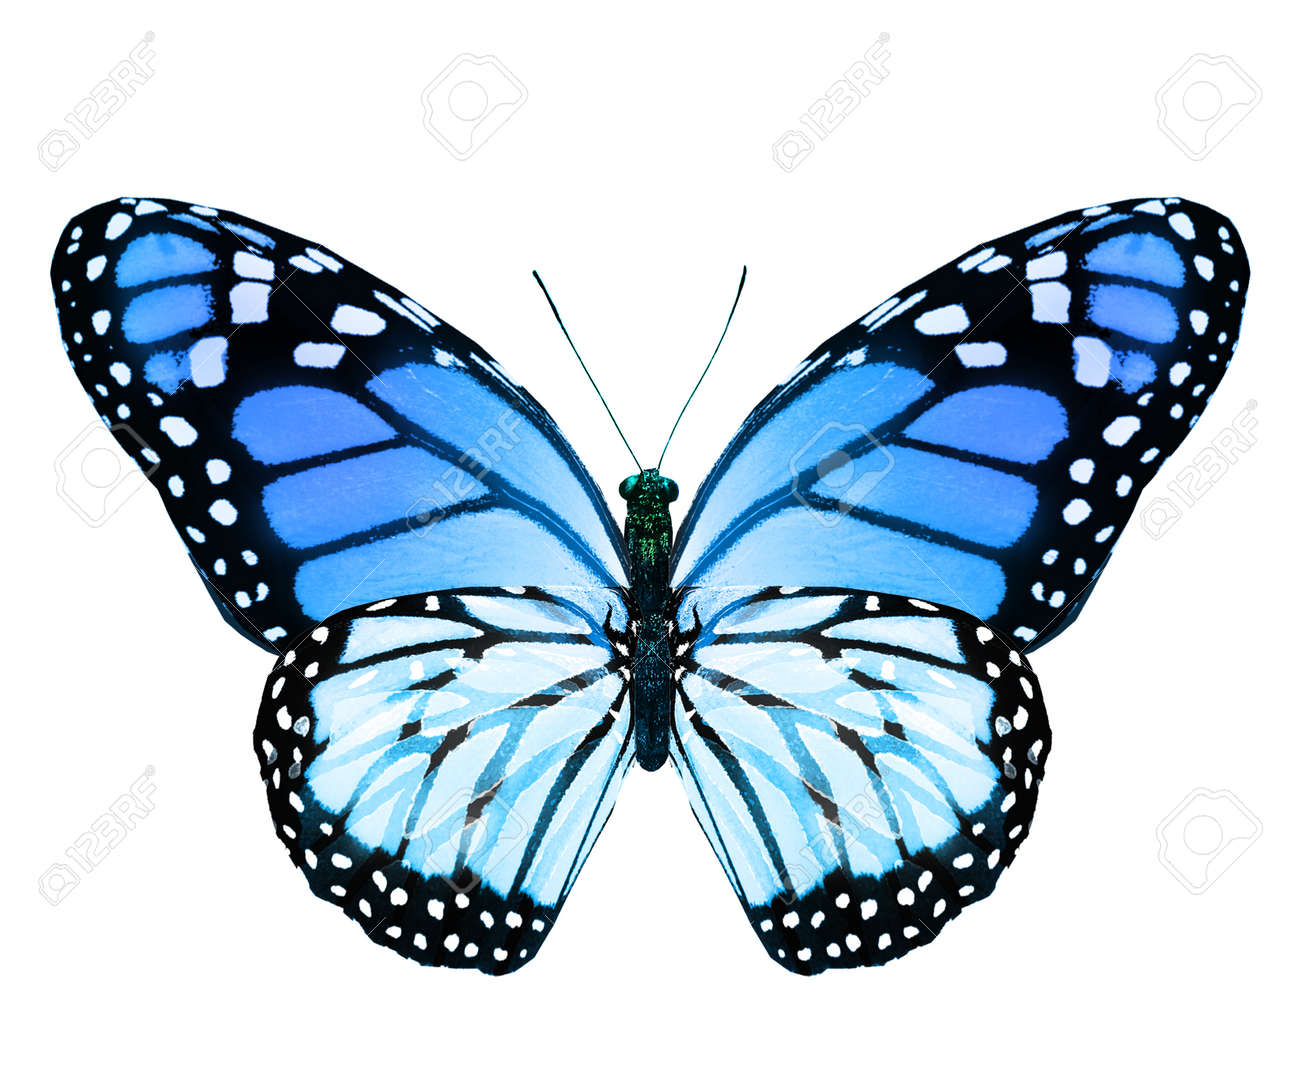 Color monarch butterfly, isolated on the white background - 165118774